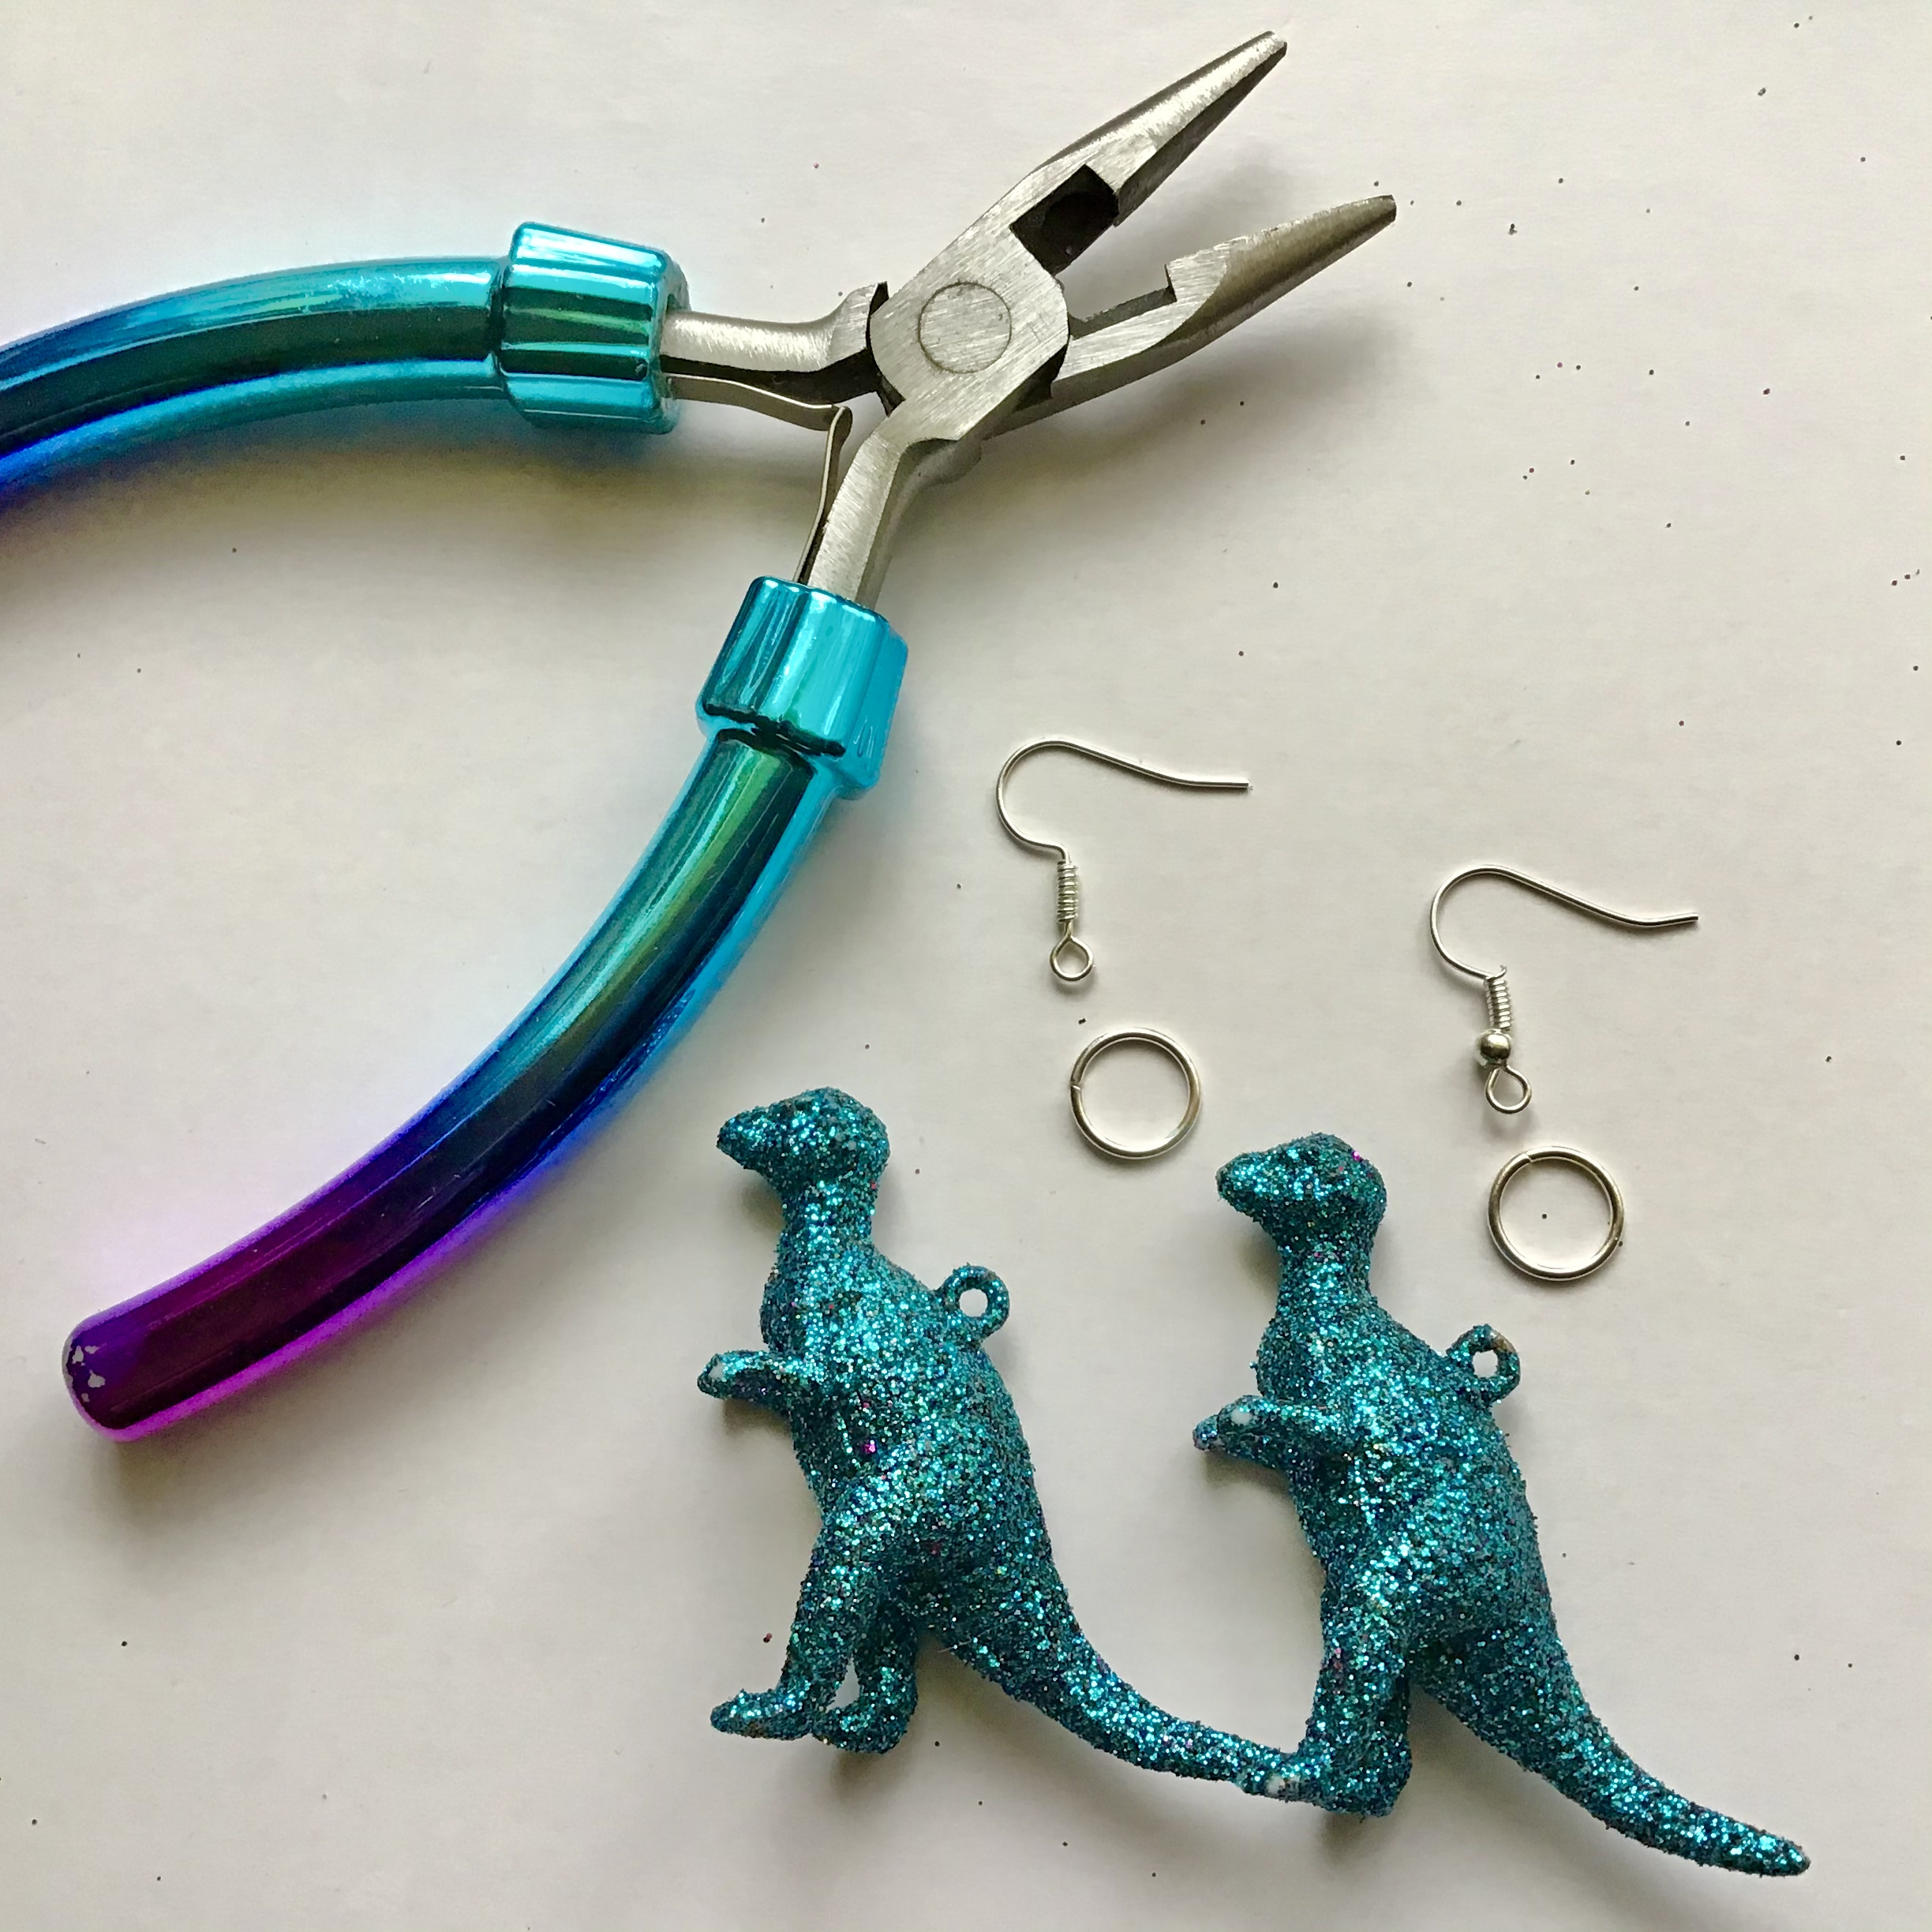 Glitter Dinosaur Earrings DIY - Step One